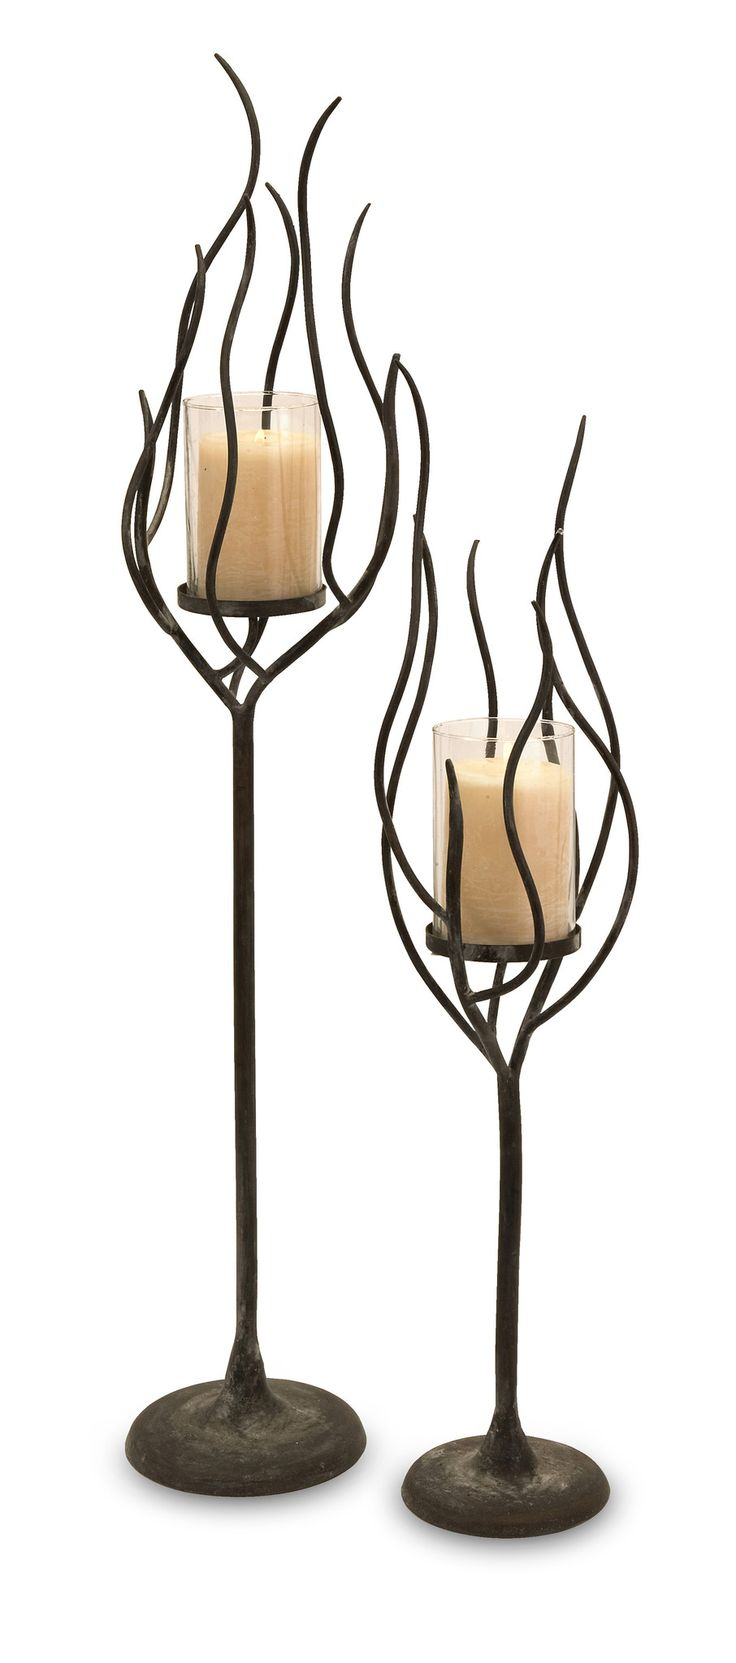 best  wrought iron candle holders ideas on pinterest  wrought  - anemone candle holder  set of